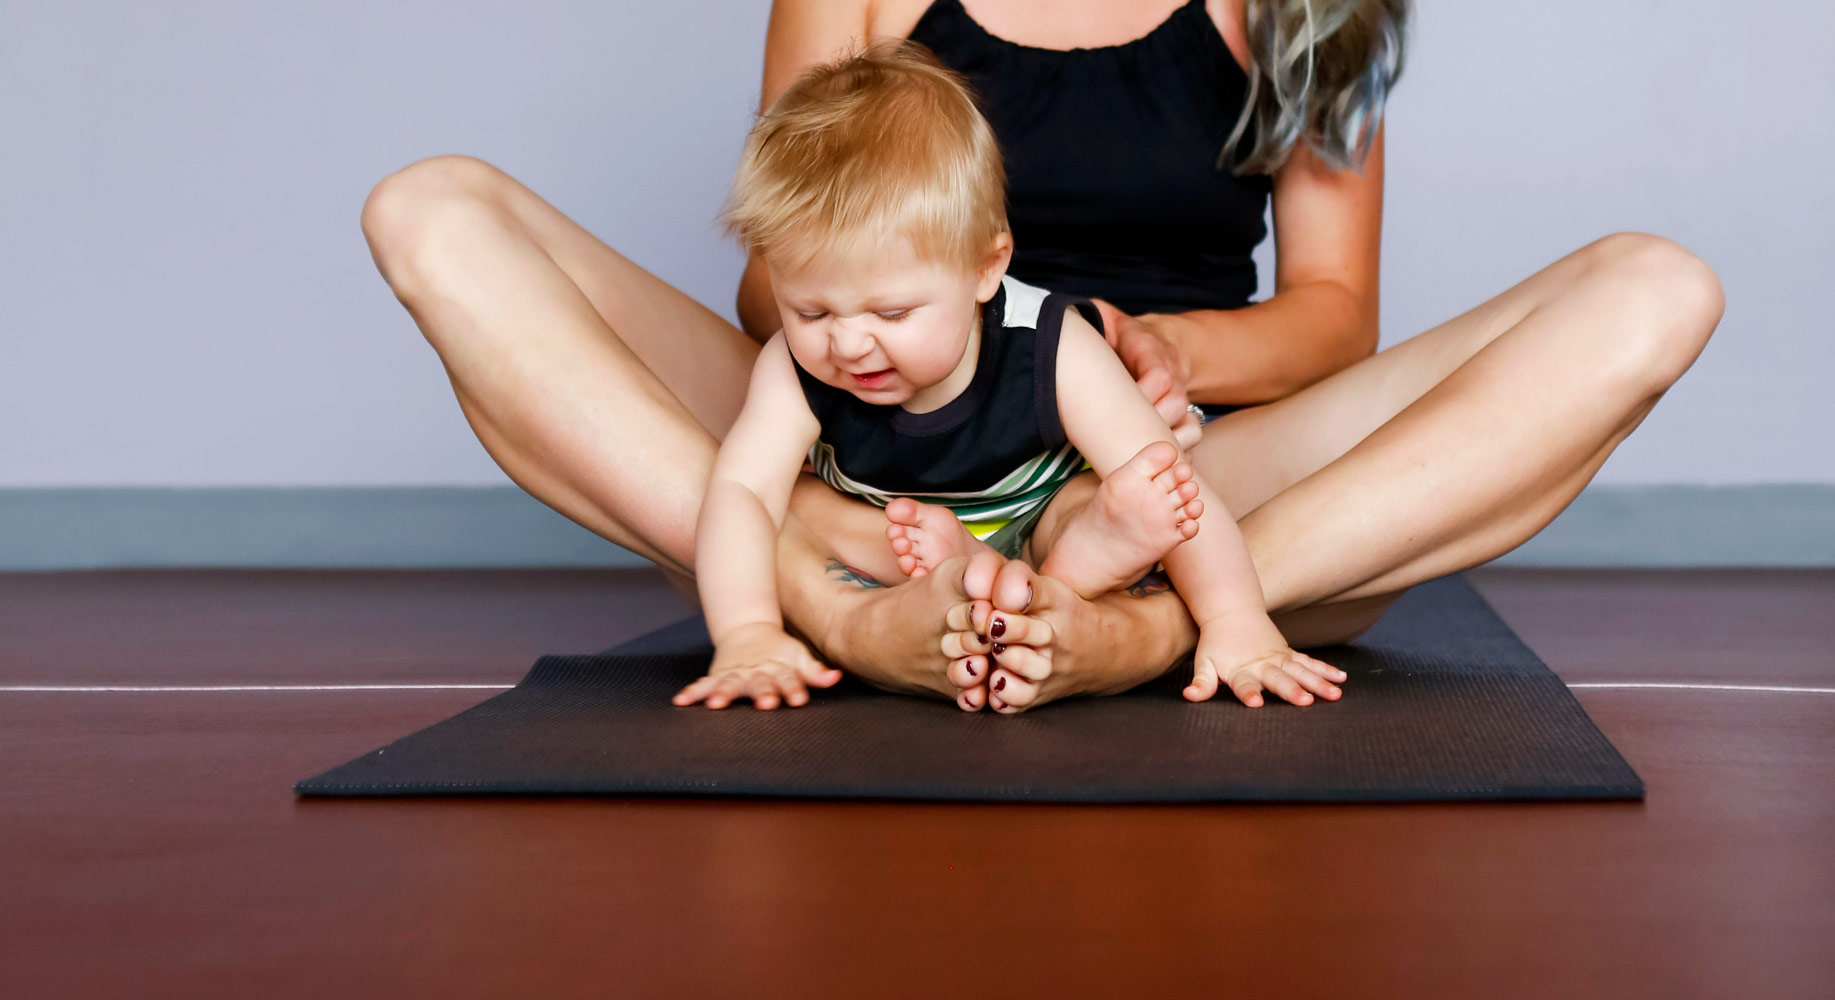 ohmmother-yoga-marketing-commercial-promotional-ruthie-hauge-photography-madison-wi-30.jpg